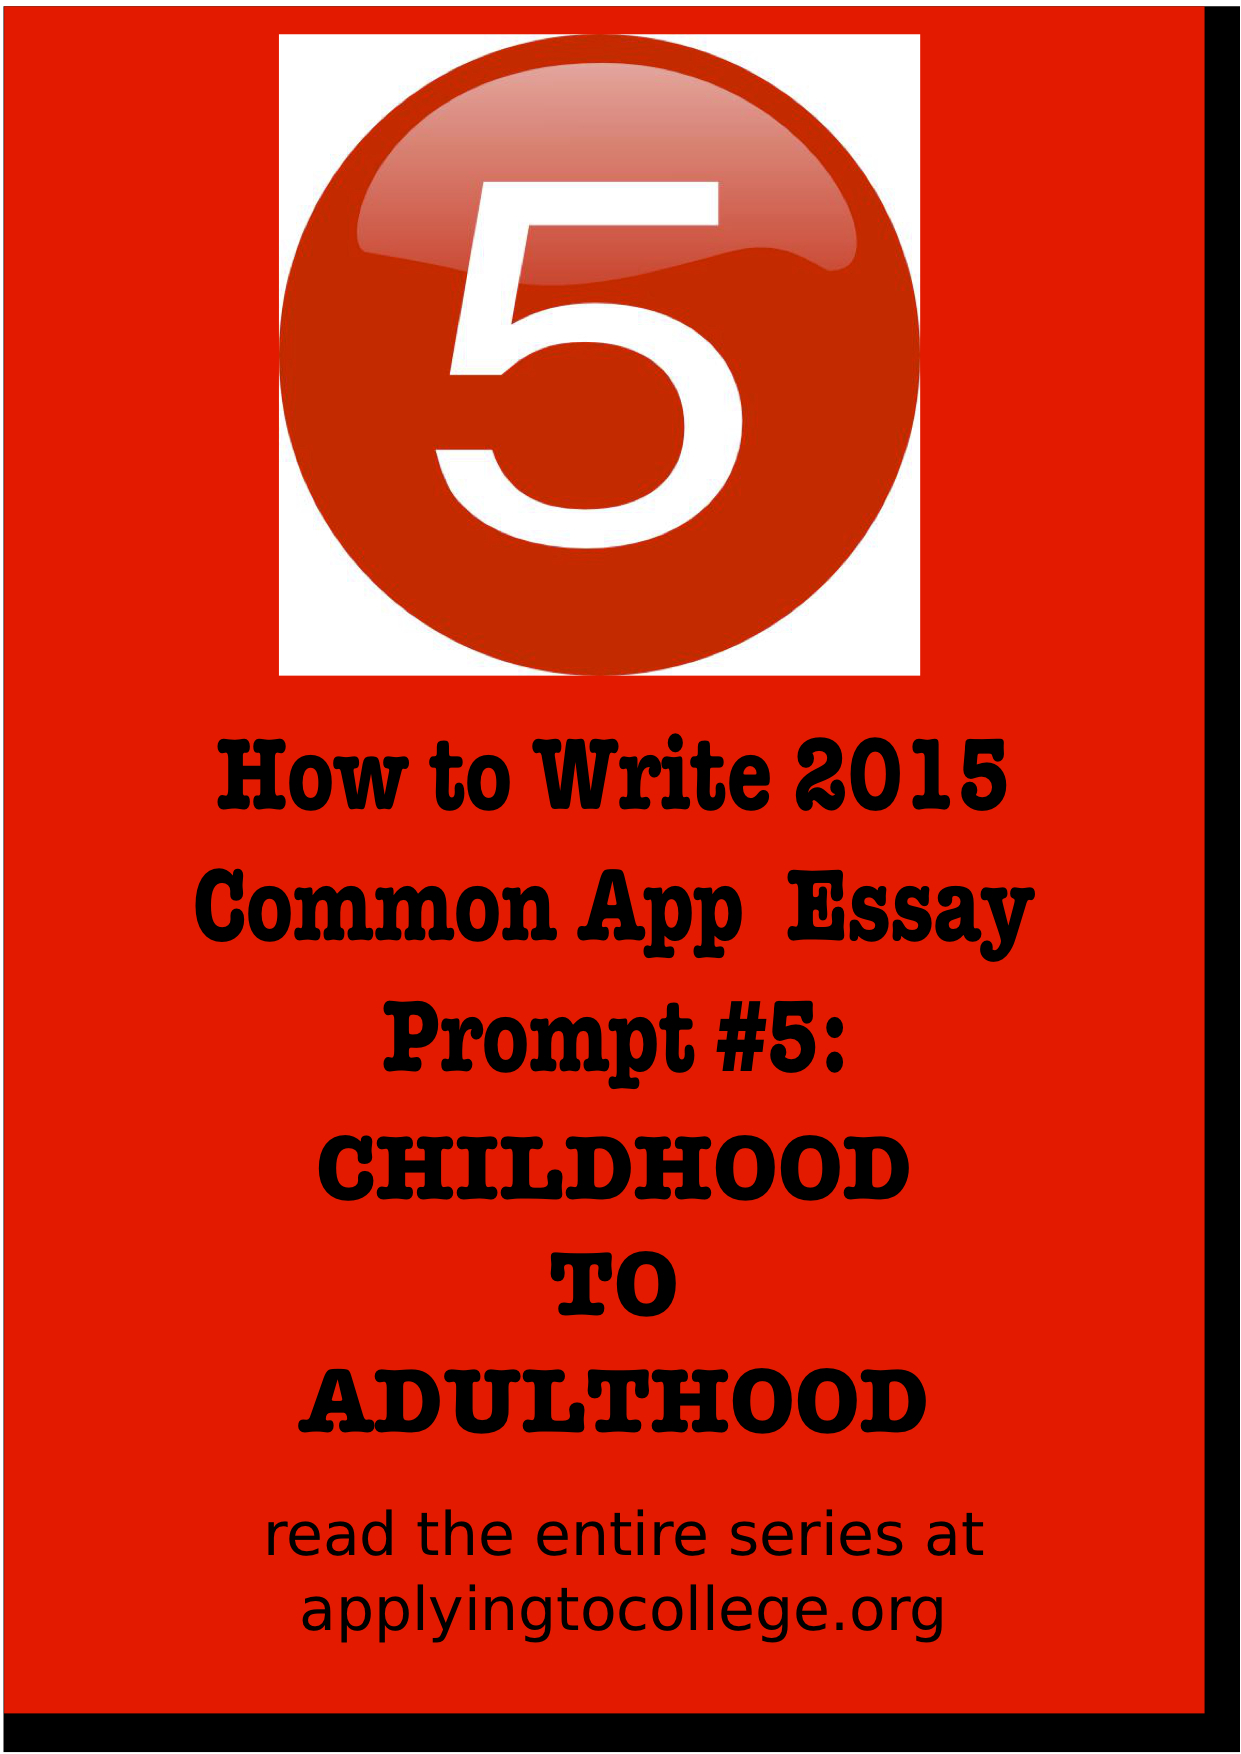 Harvard essay prompts 2015